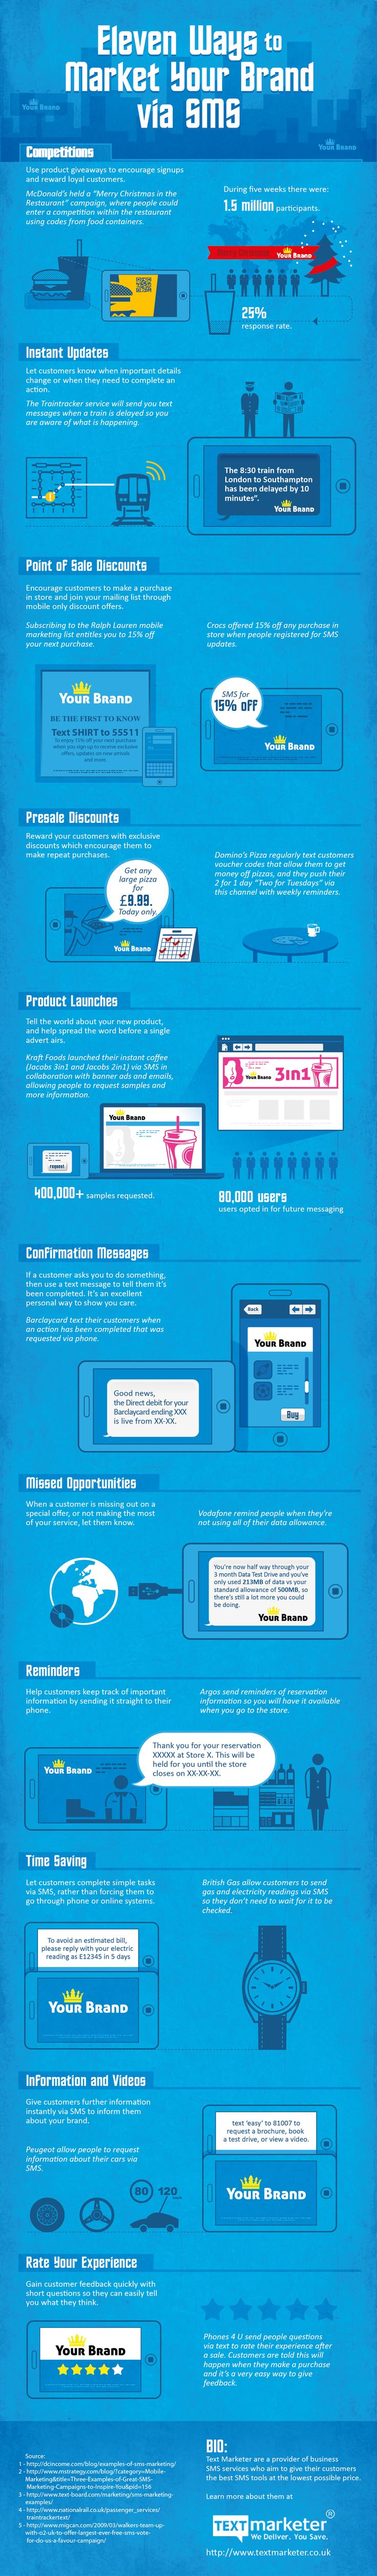 11 Ways to Market Your Brand via SMS.  http://kingstonmobilemarketing.com/Text-Message-Marketing.php